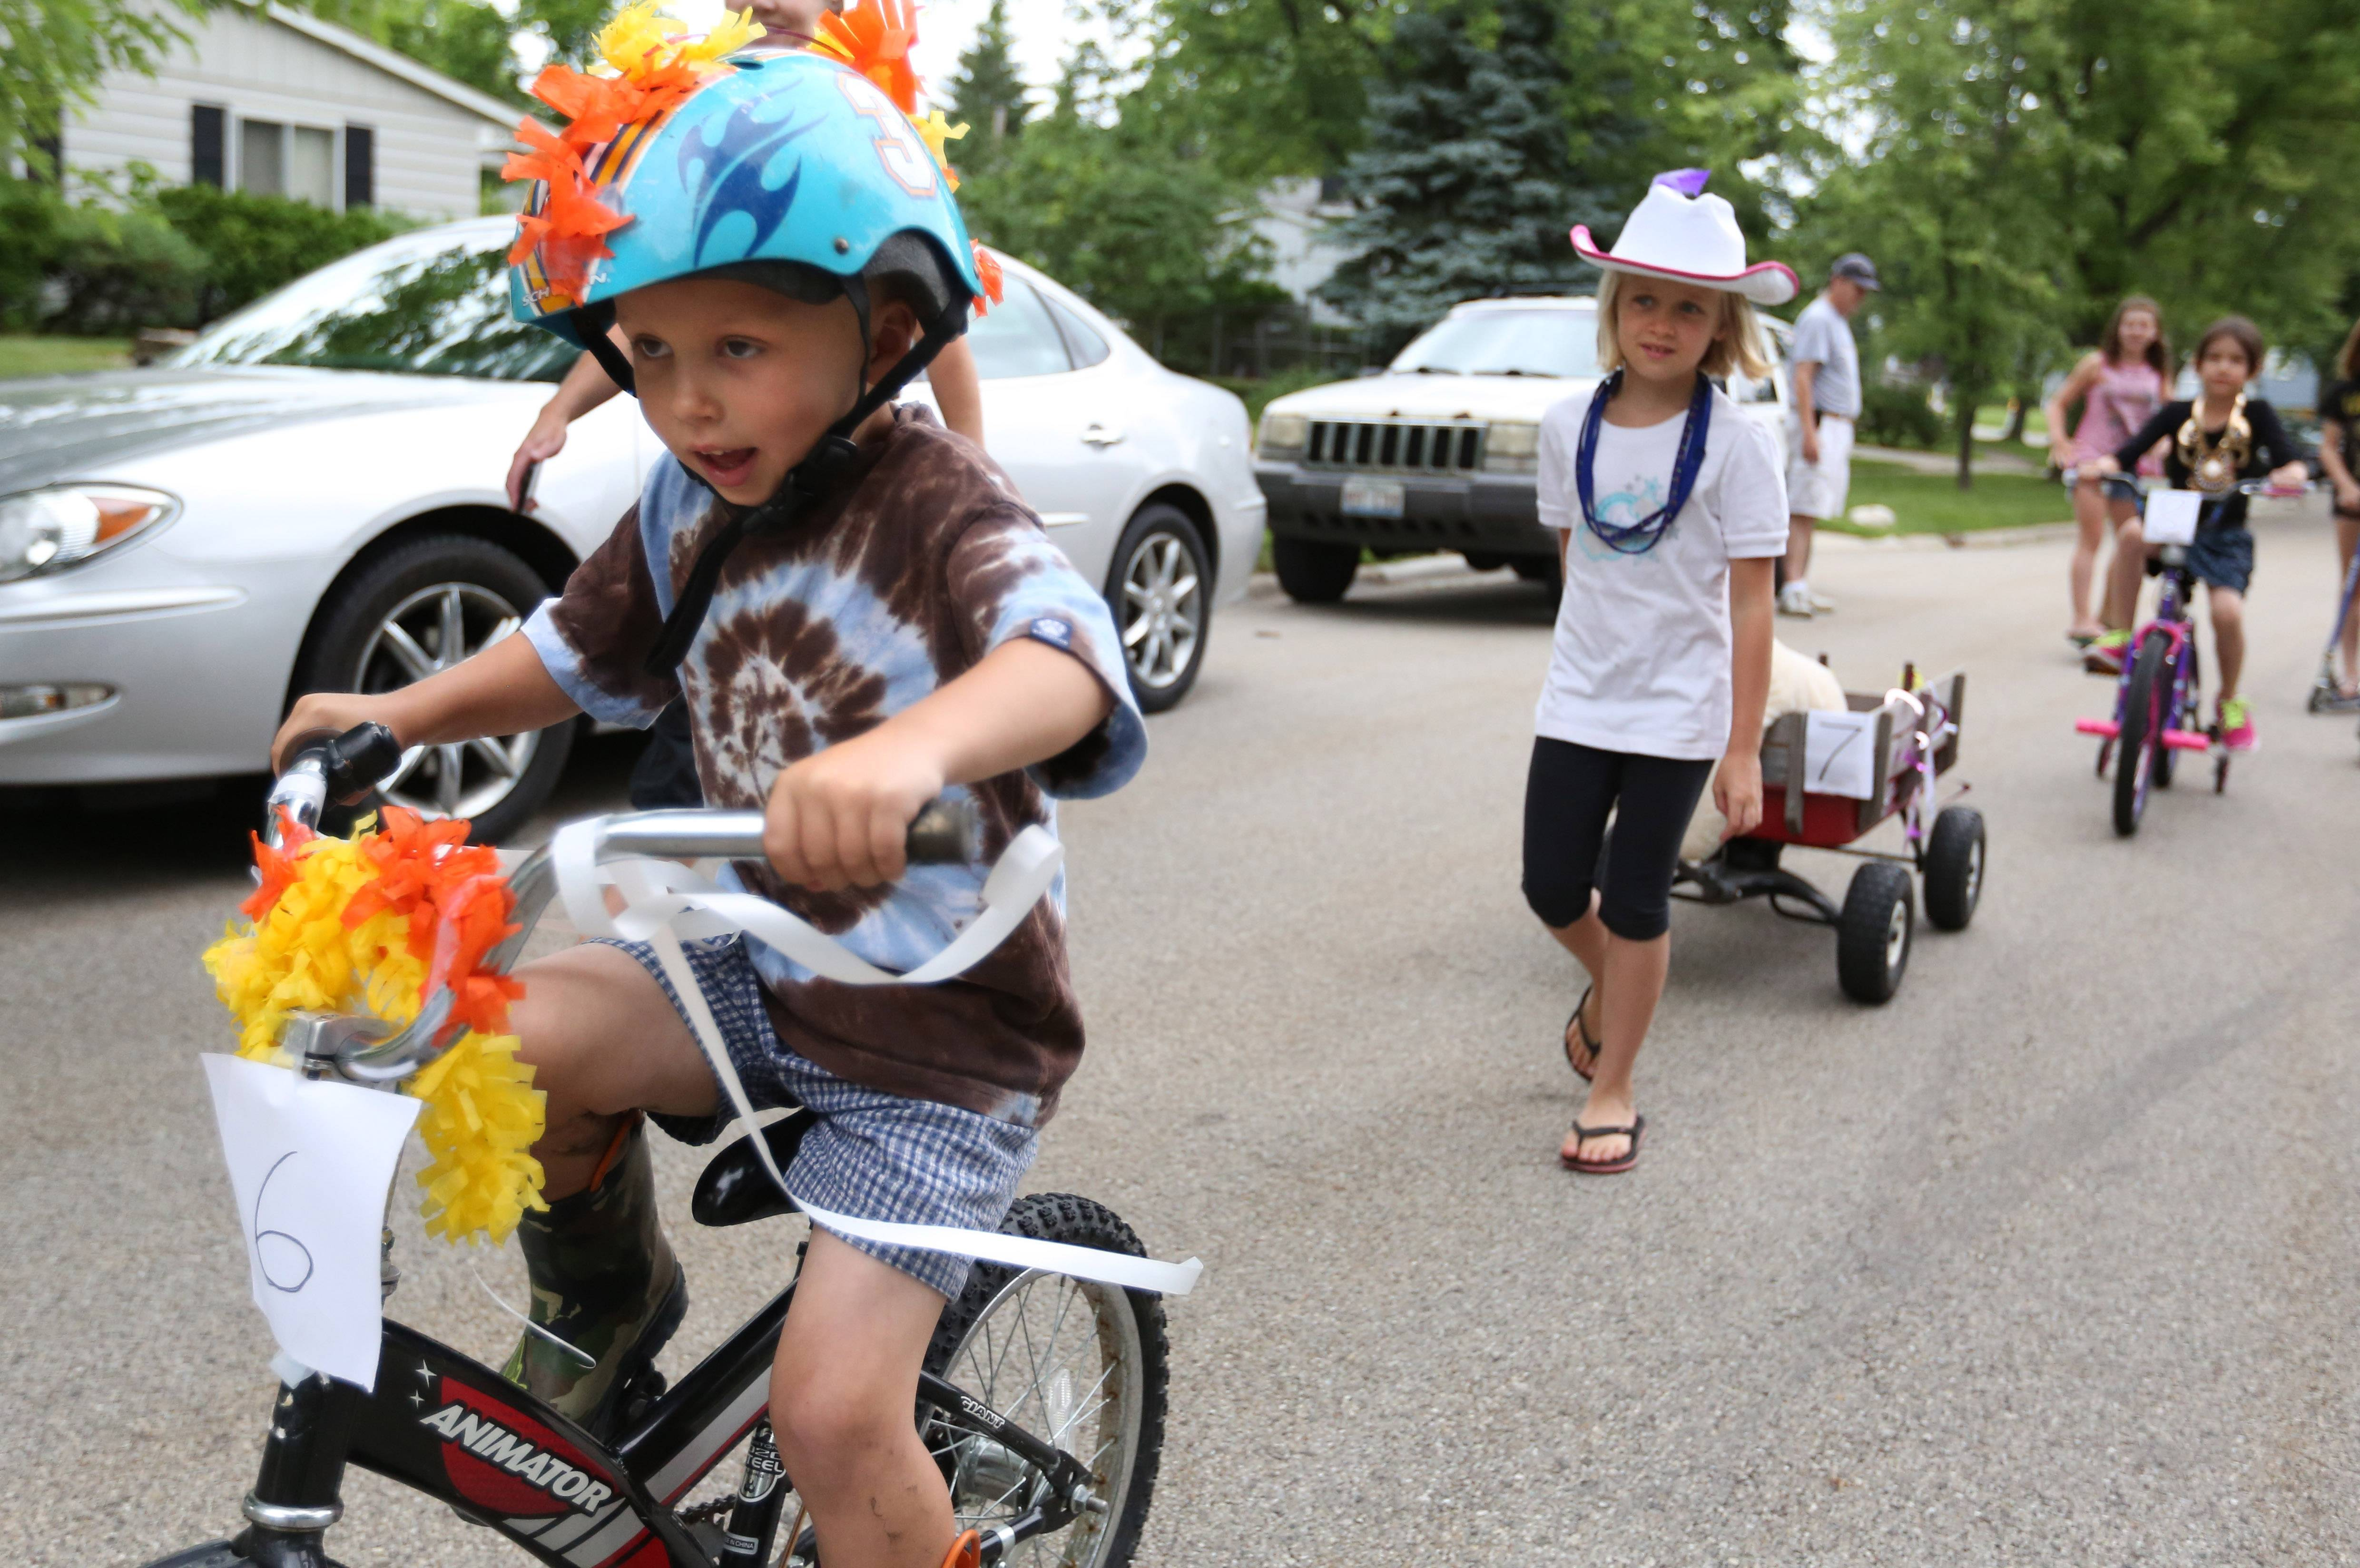 Aaron Jackson, 5, of Grandwood Park rides in a judged kids bike parade near Adams park as part of Grandwood Park Summerfest on Saturday in Grandwood Park near Gurnee.